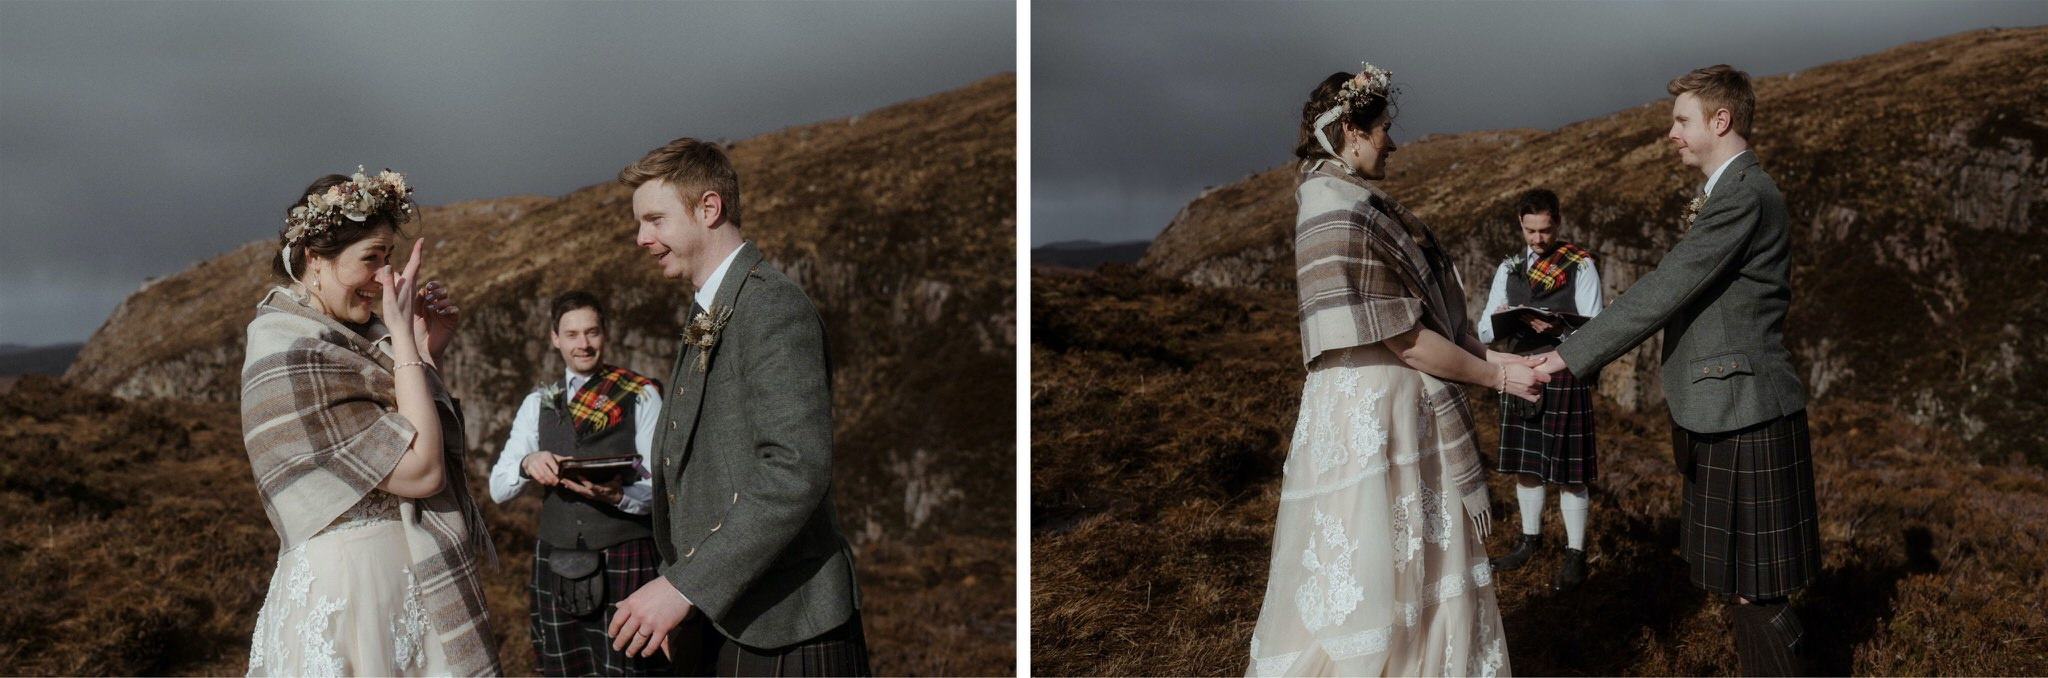 Bride and groom exchange rings during their Assynt elopement wedding in Scotland_Bride getting emotional during an elopement in Scotland